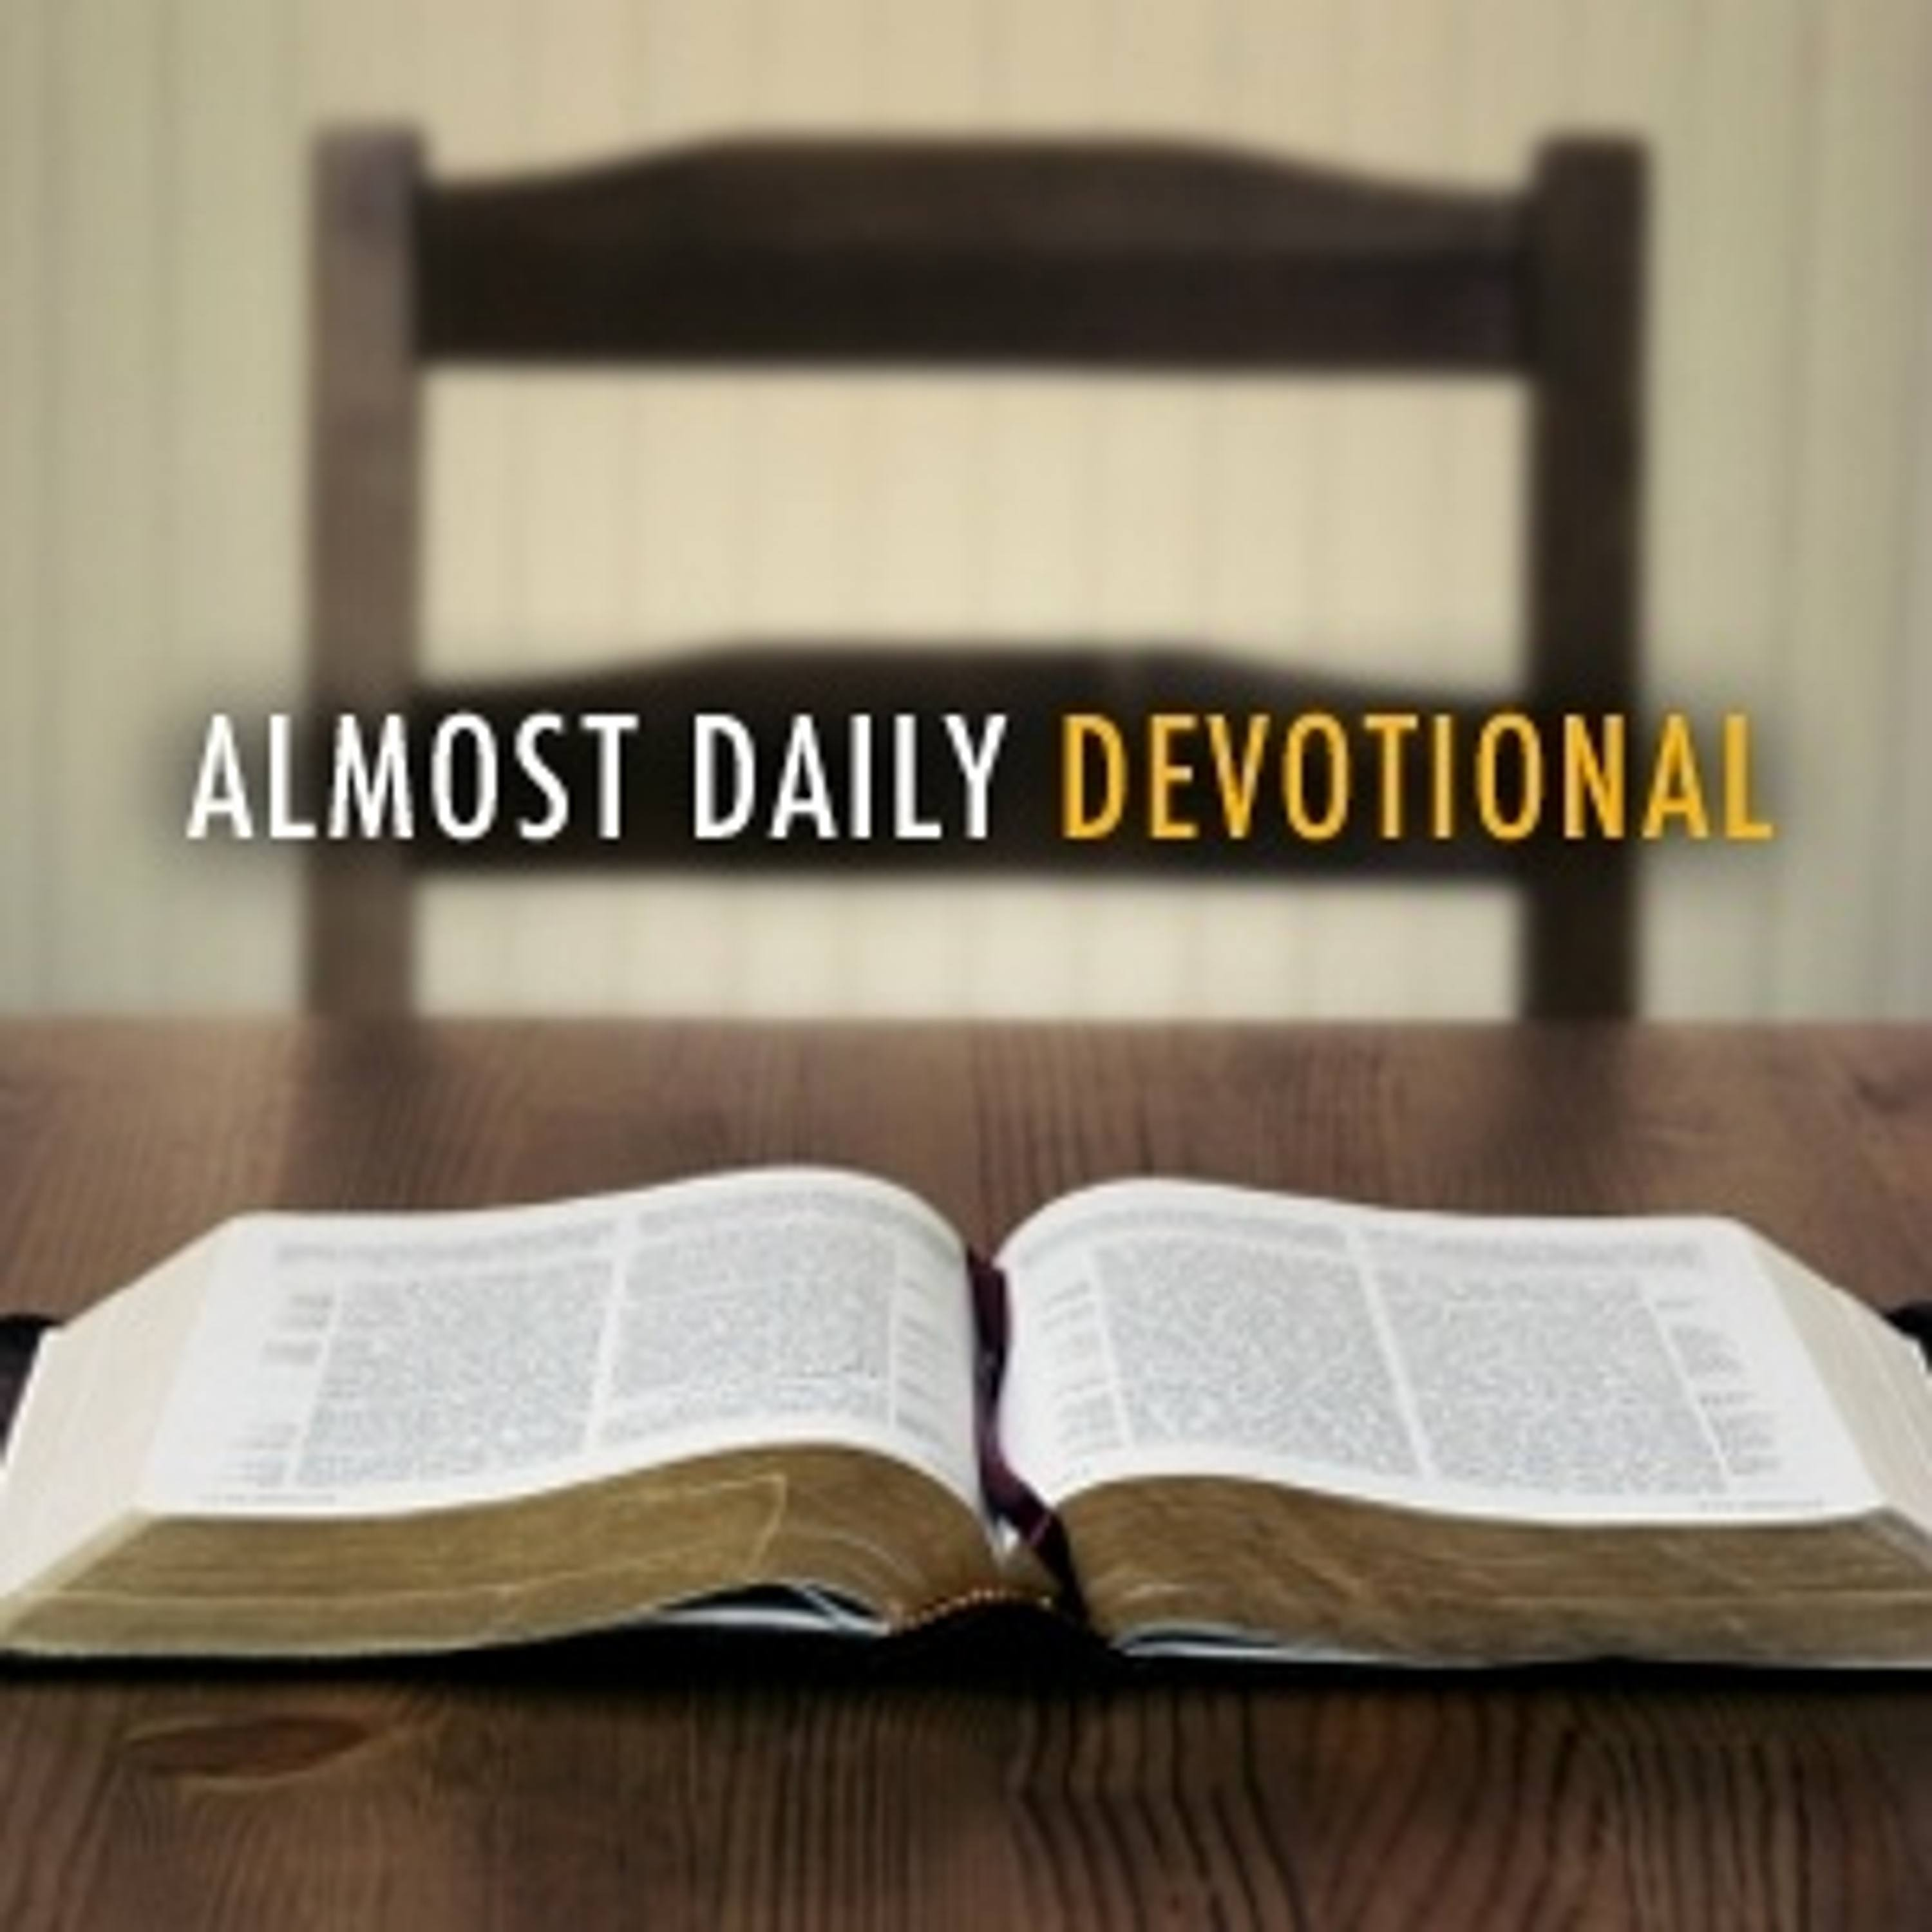 Almost Daily Devotional